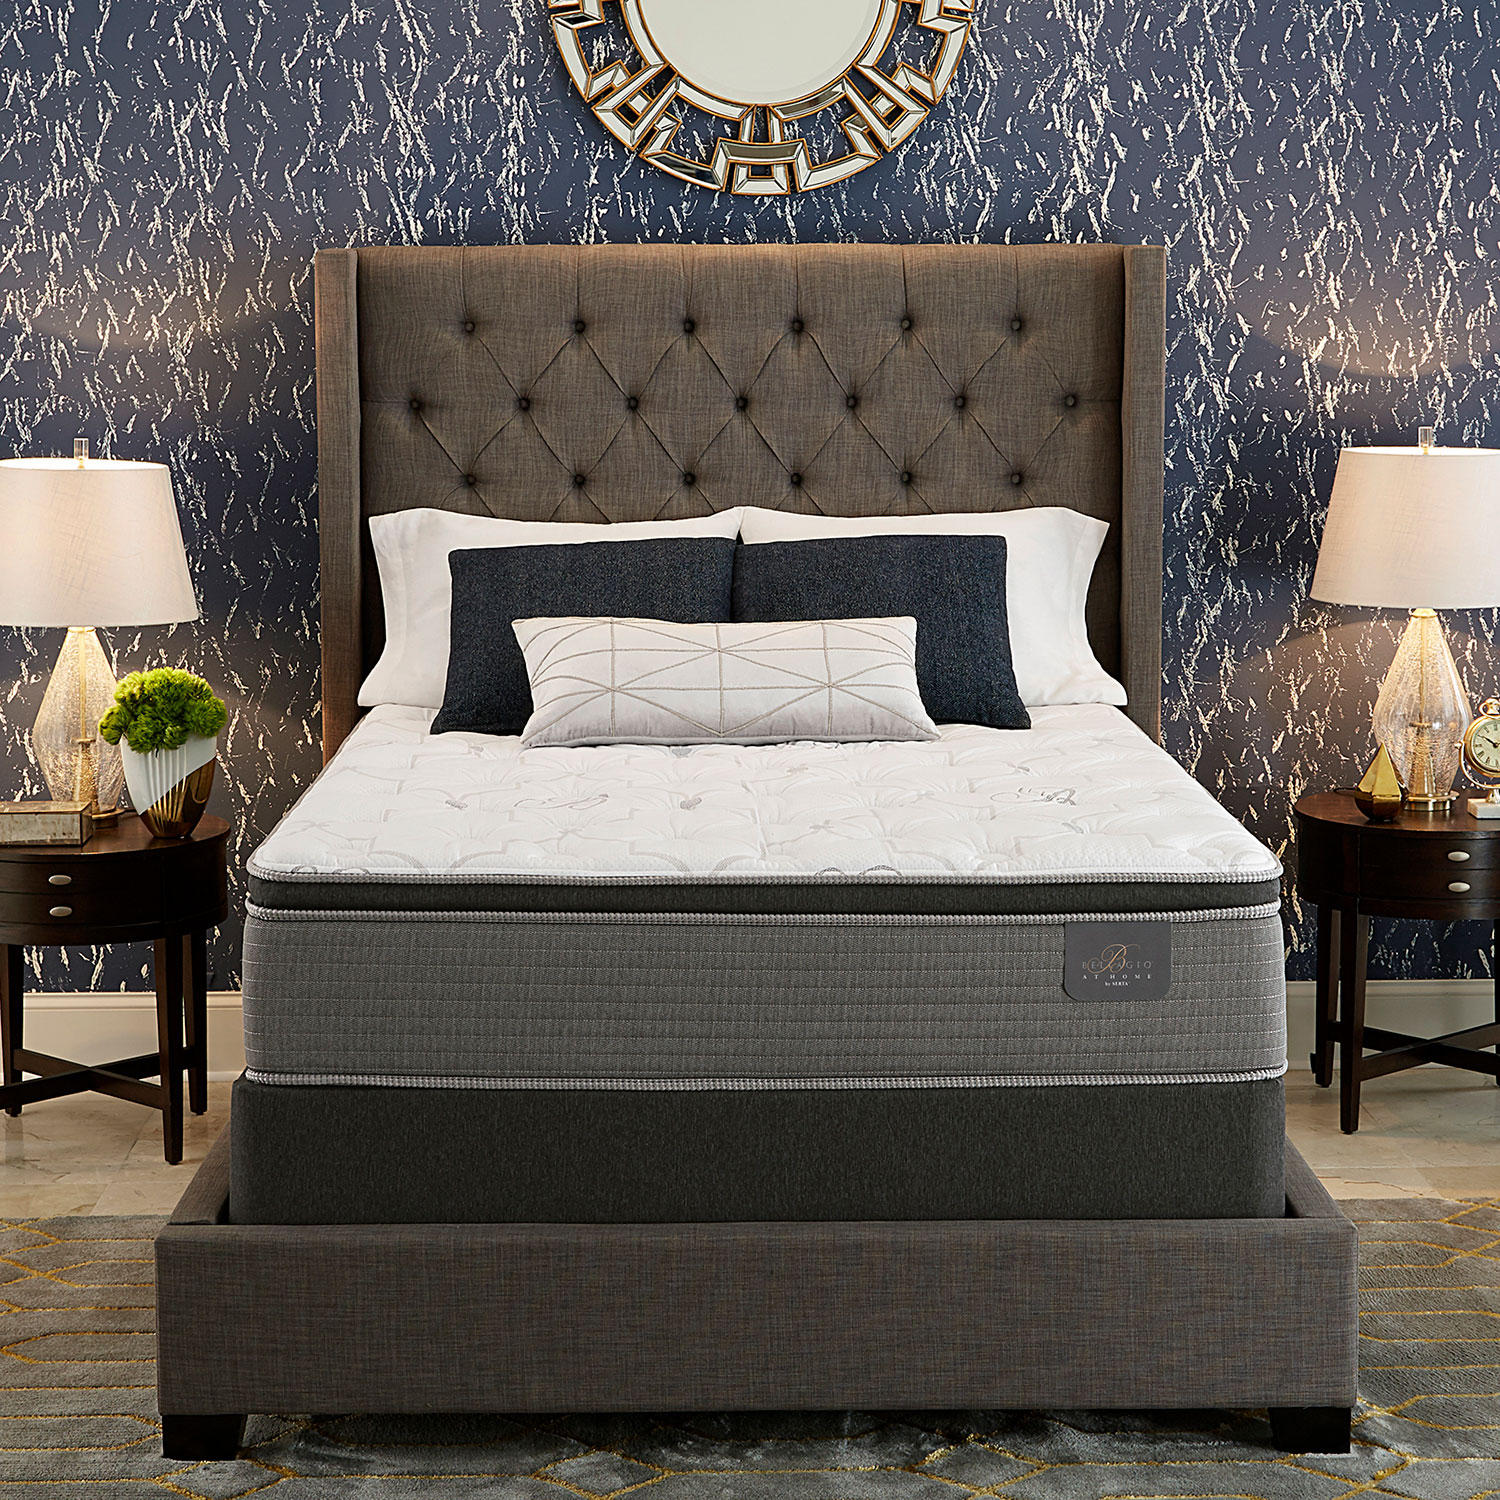 Serta Bellagio Full Cushion Firm Pillowtop Mattress Set